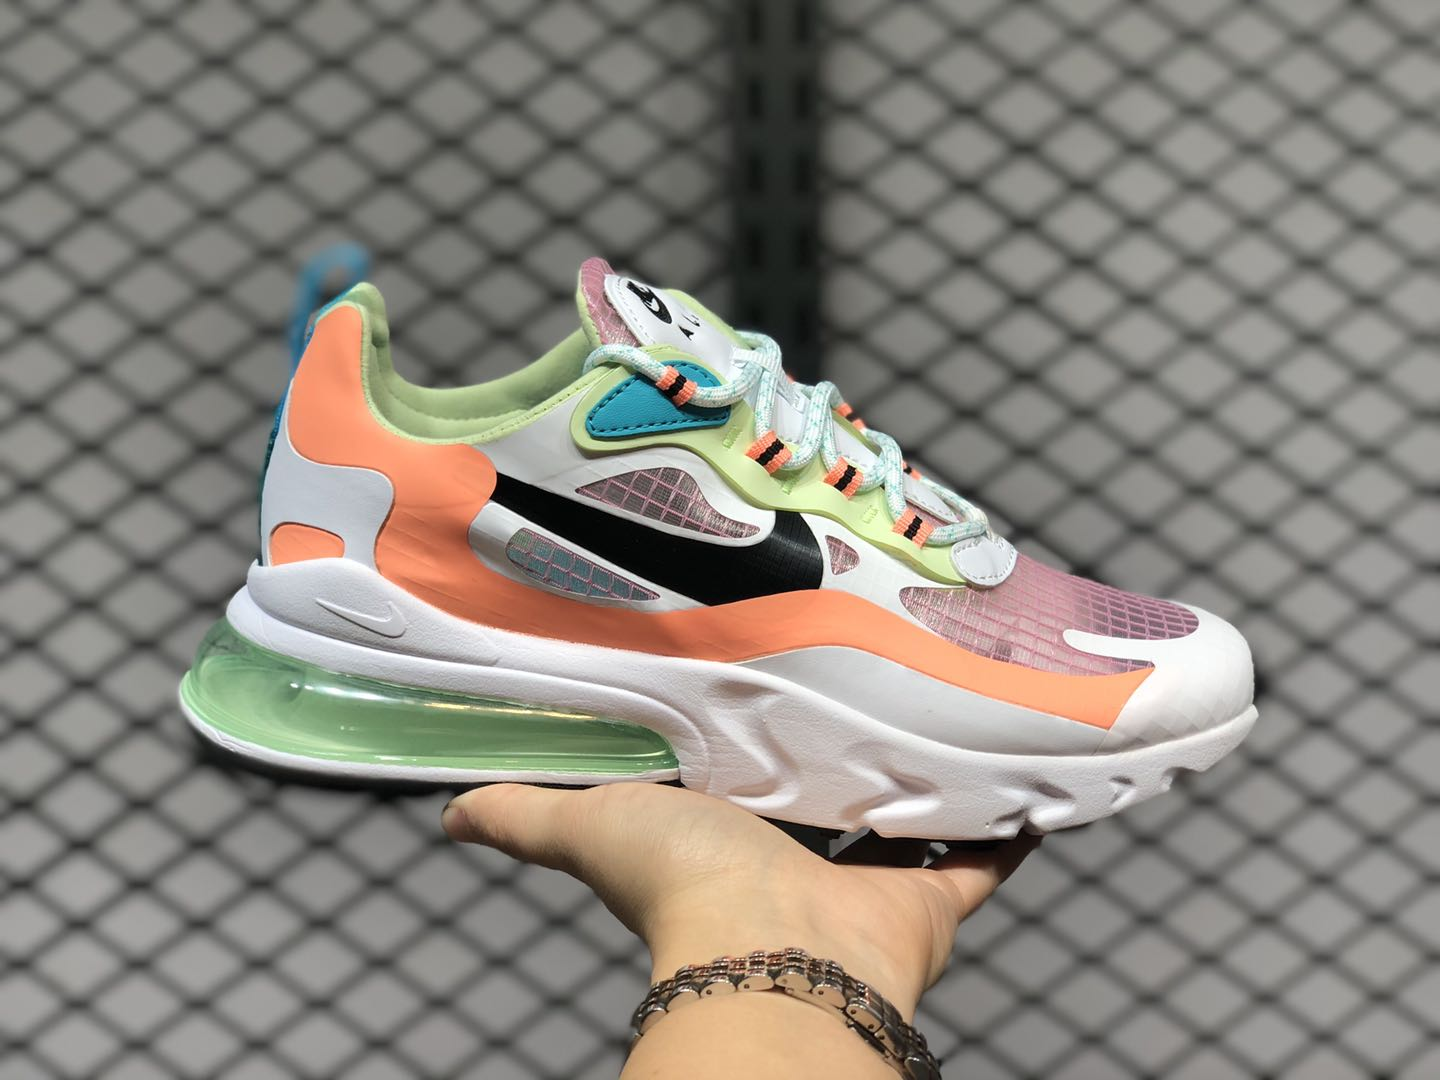 Nike Air Max 270 React GS Light Arctic Pink On Sale CJ0620-600